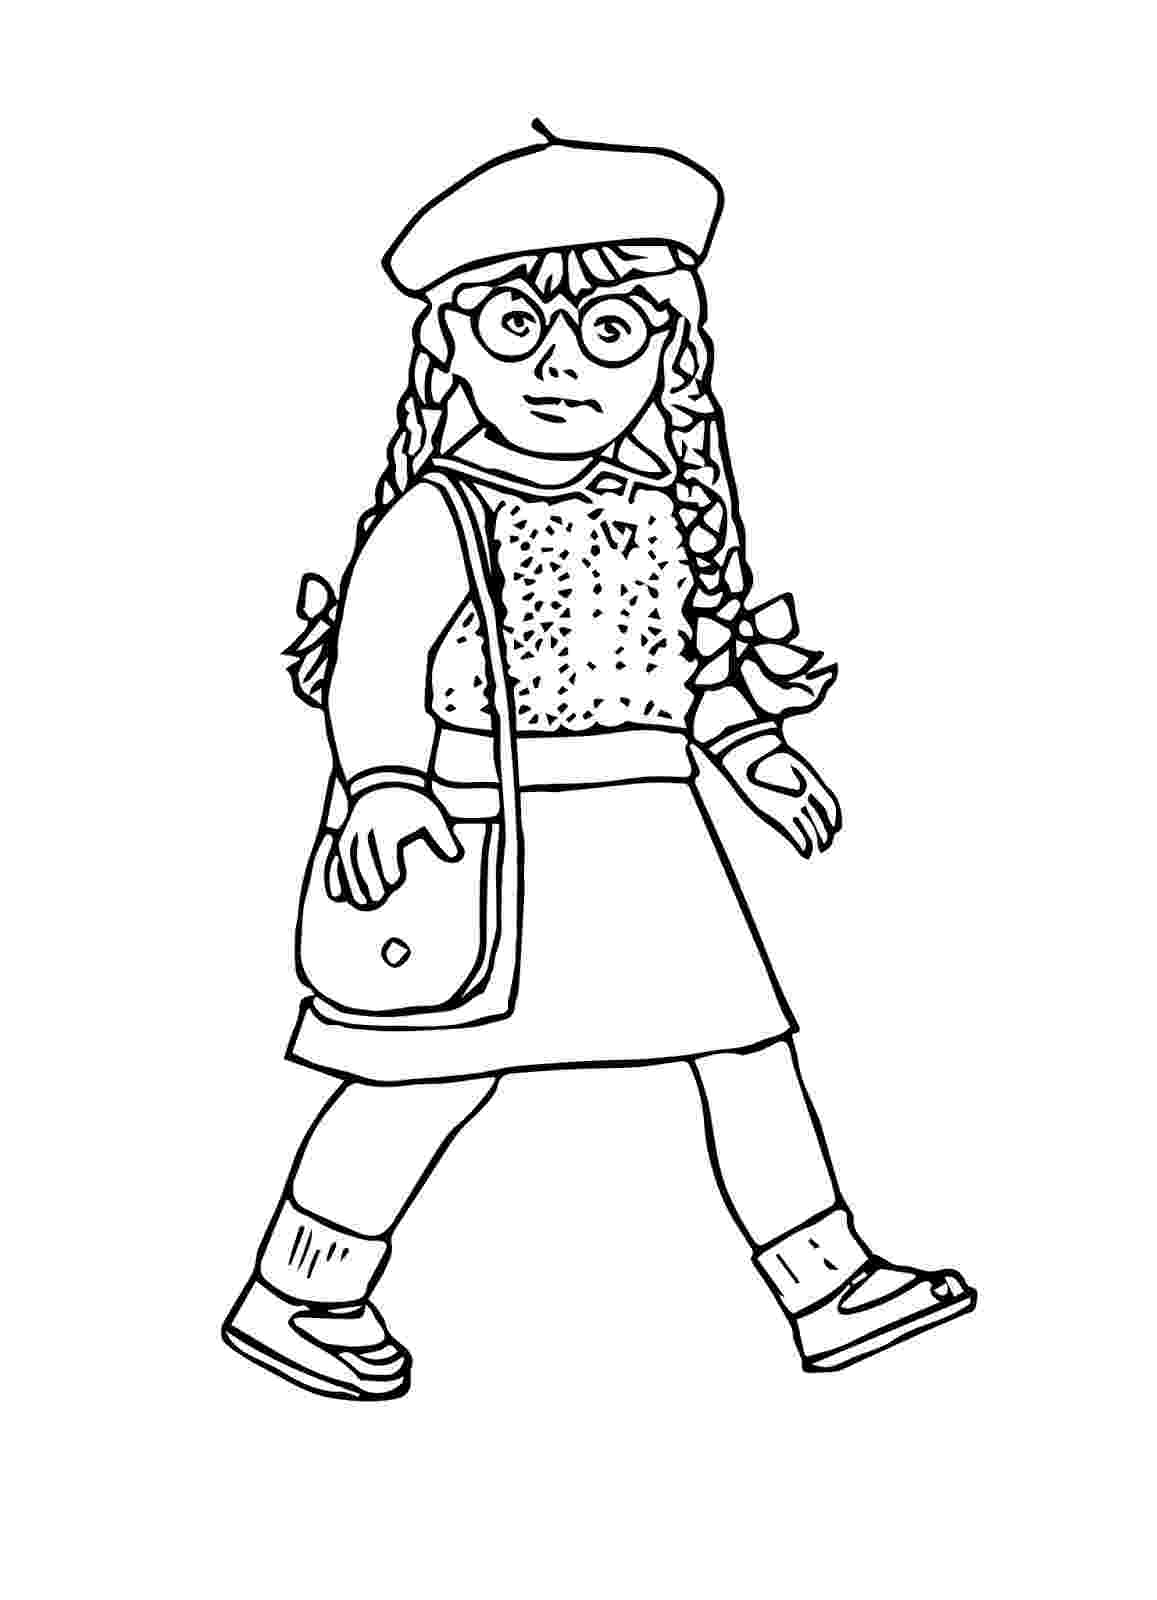 american girl coloring pages printable american girl coloring pages best coloring pages for kids american coloring girl pages printable